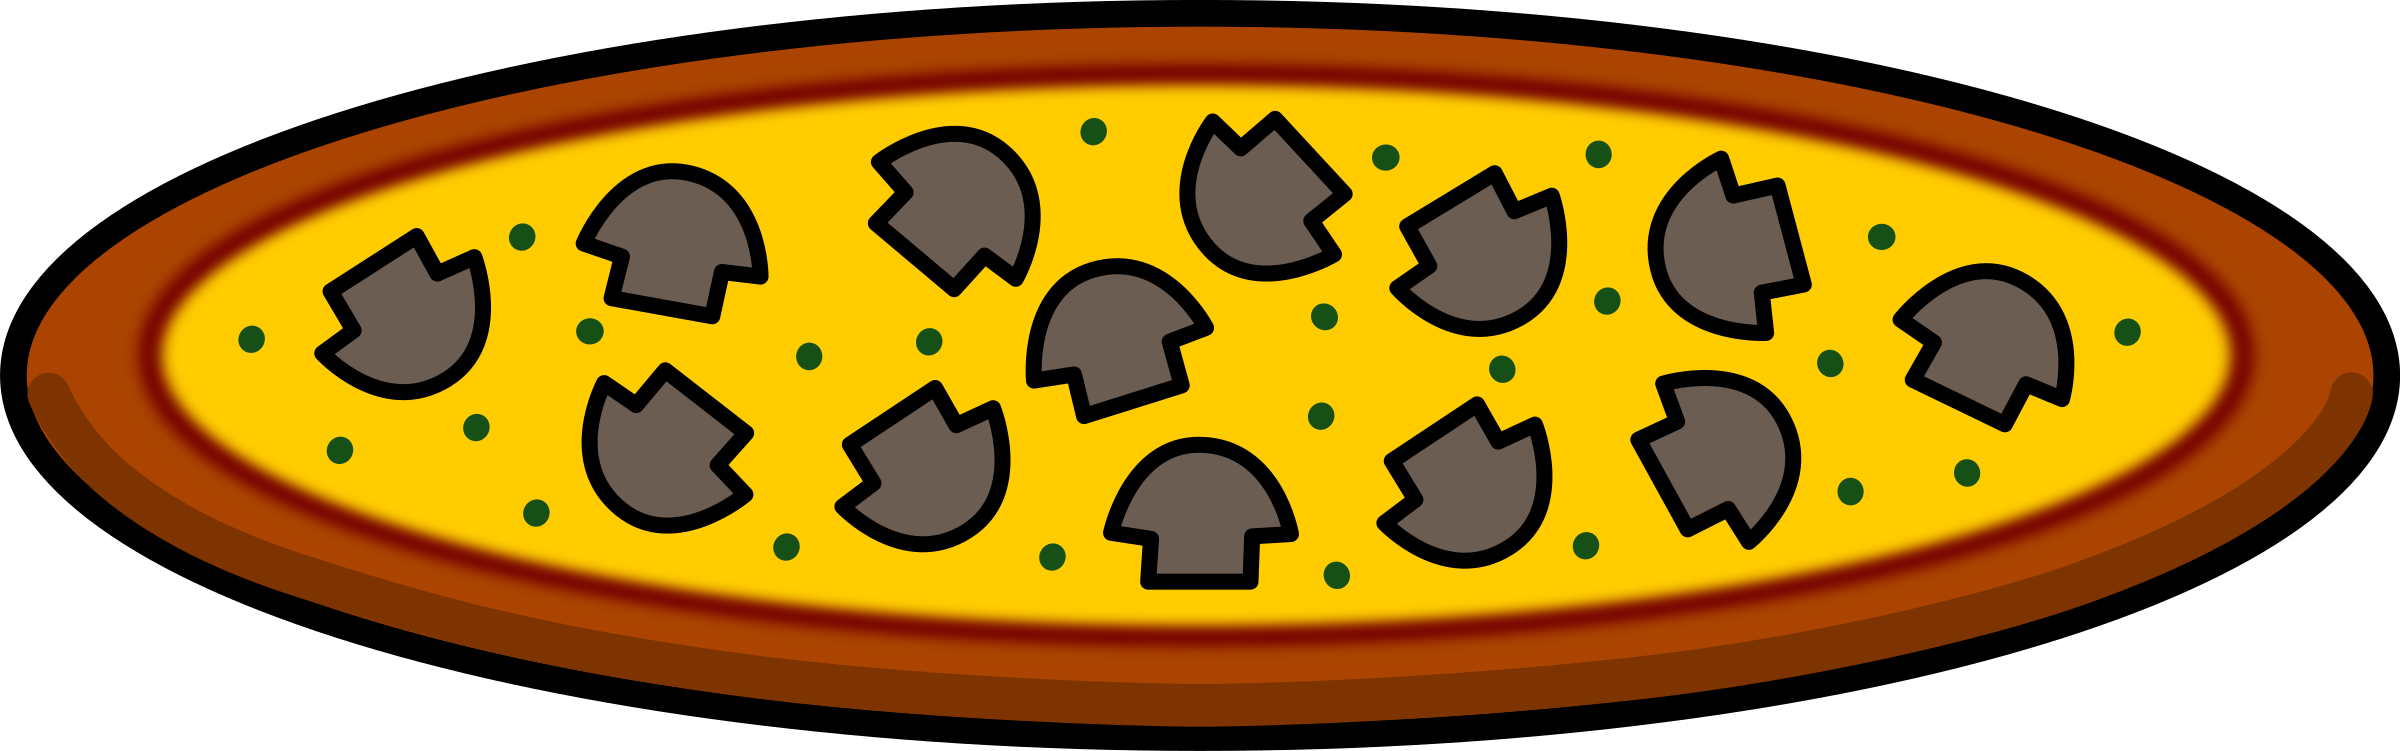 Mushroom icons png free. Pizza clipart big pizza